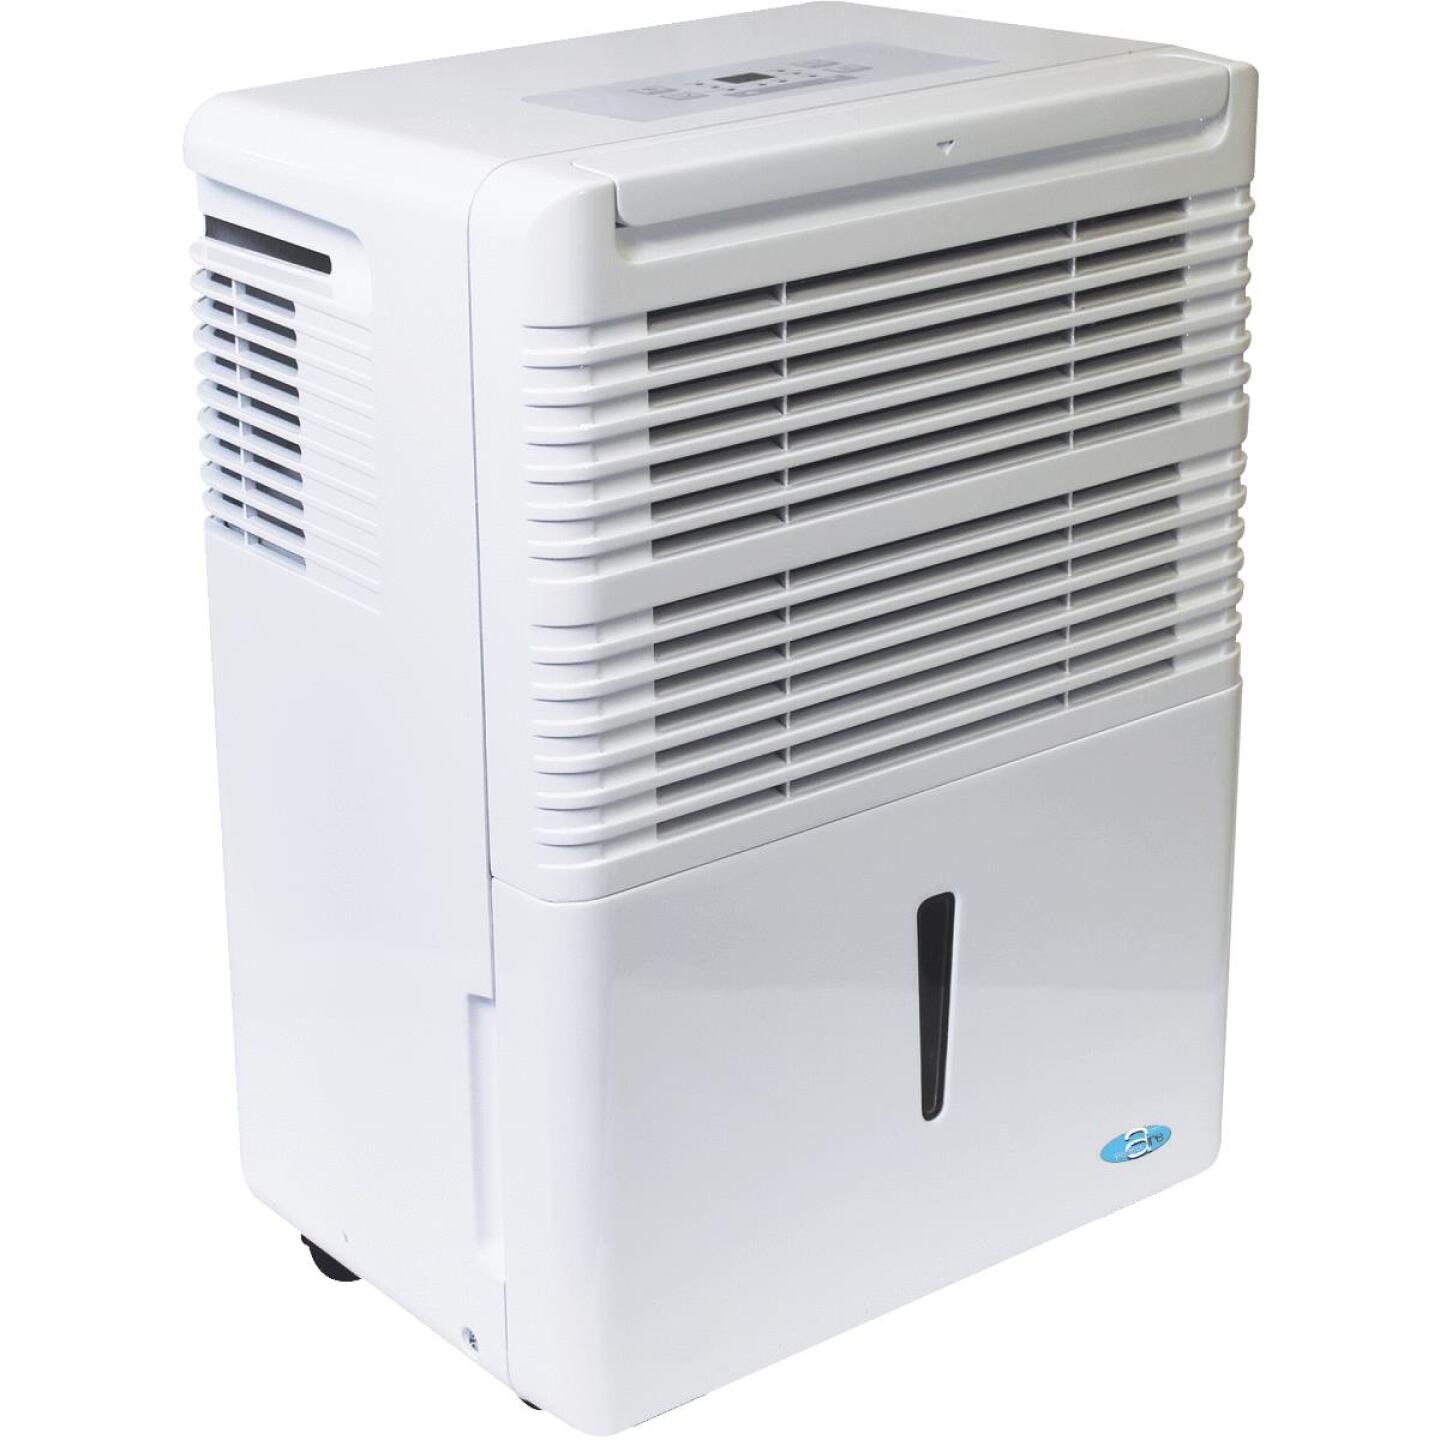 Perfect Aire 30 Pt./Day 430 Sq. Ft. Coverage 2-Speed Dehumidifier Image 2